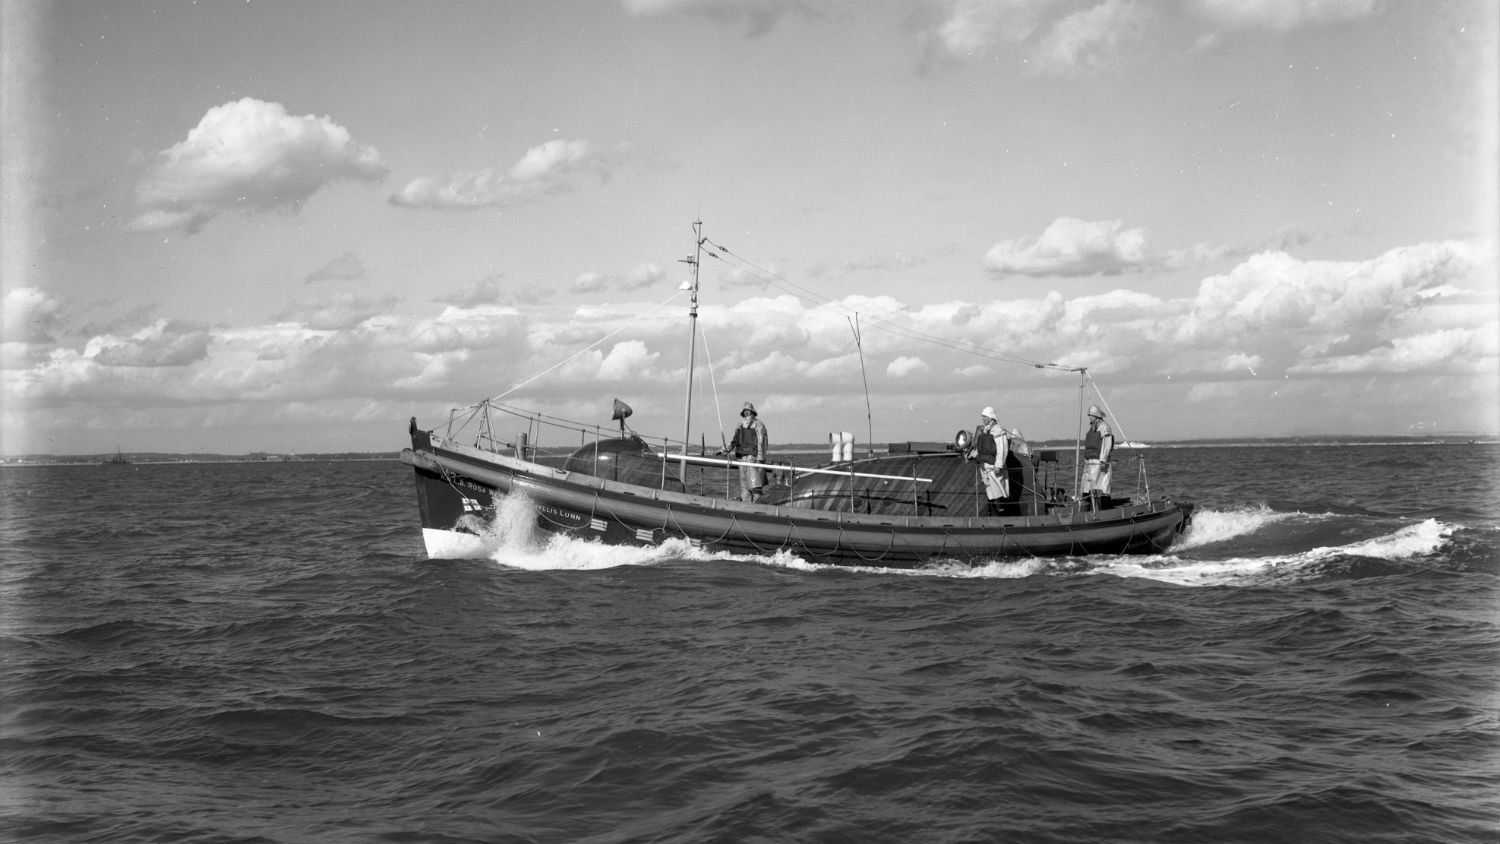 Black and white image of Reserve lifeboat (Shoreham), Rosa Wood and Phyllis Lunn, while on trials